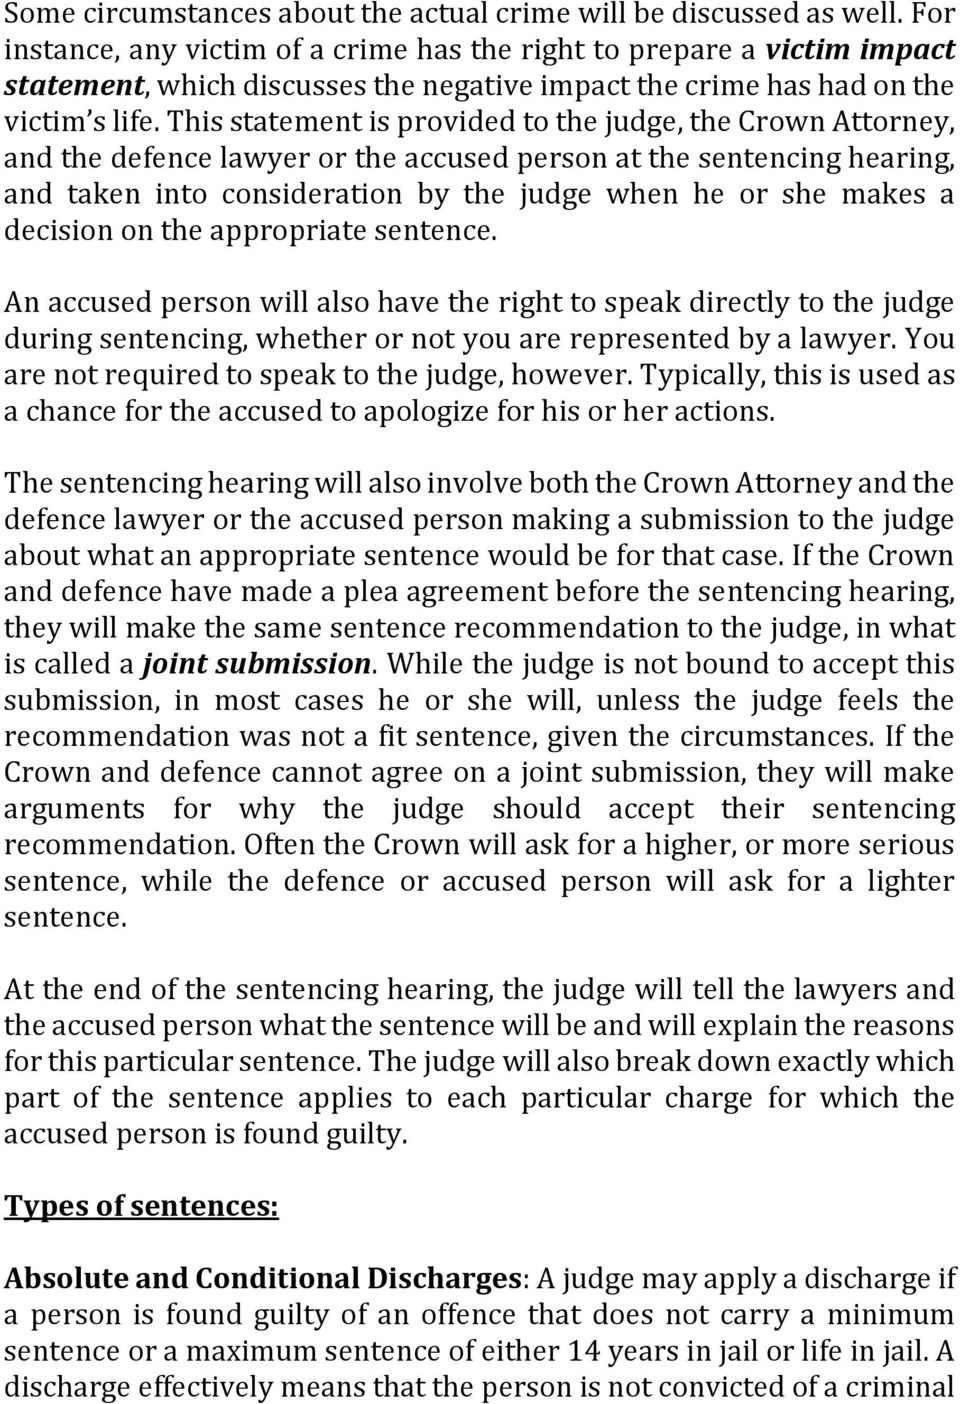 This statement is provided to the judge, the Crown Attorney, and the defence lawyer or the accused person at the sentencing hearing, and taken into consideration by the judge when he or she makes a